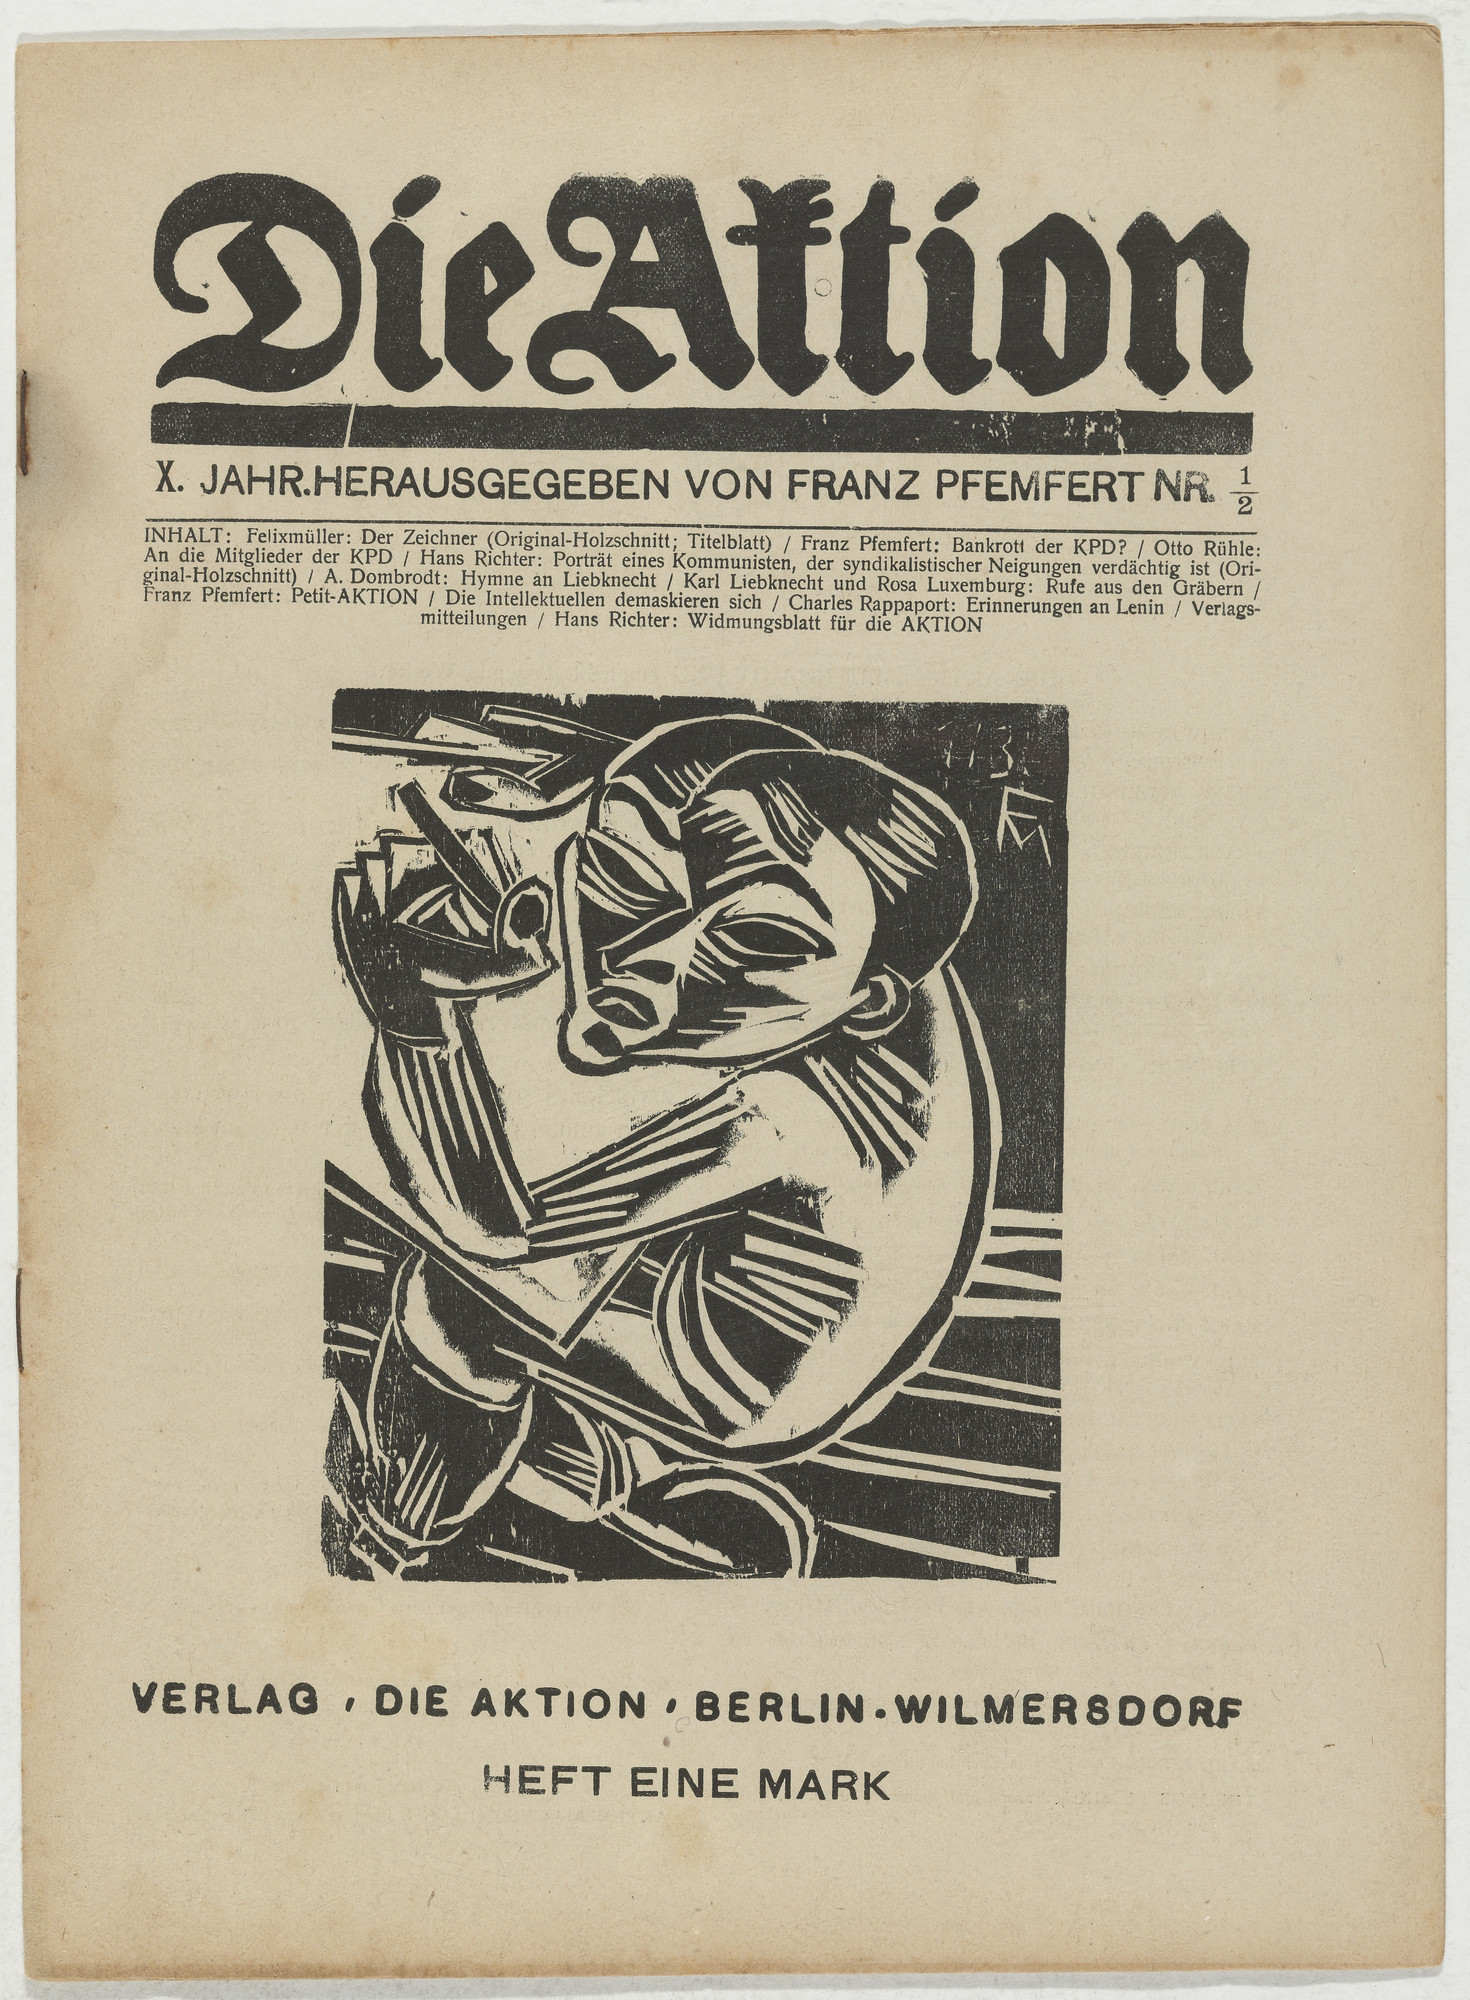 Conrad Felixmüller, Hans Richter. Die Aktion, vol. 10, no. 1⁄2. January 10, 1920